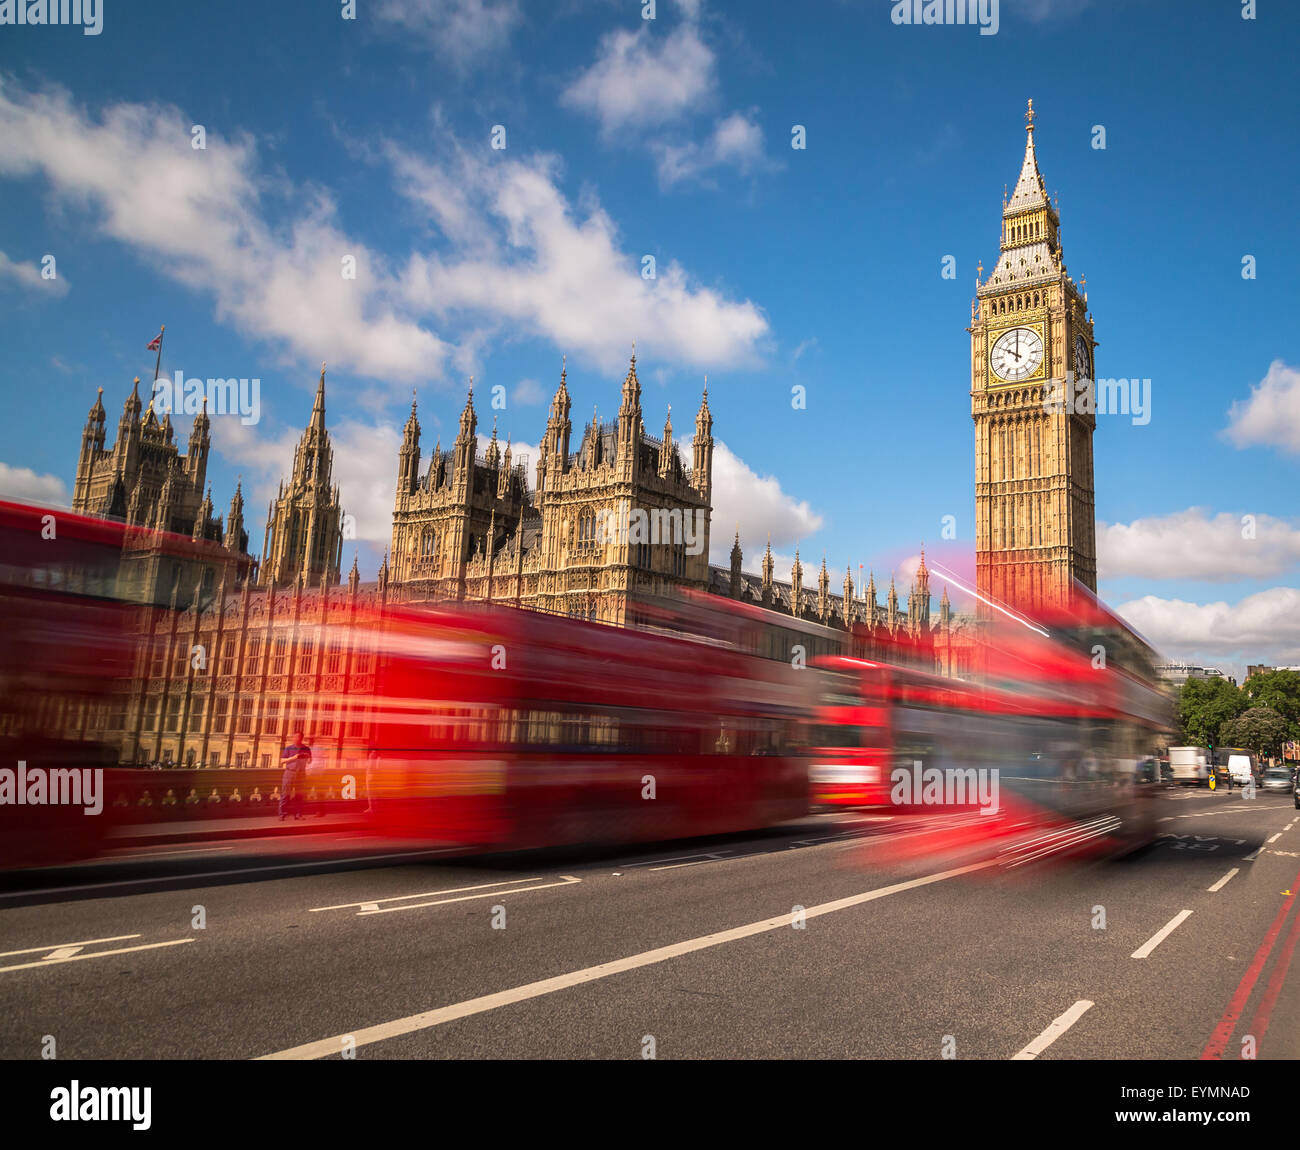 Big Ben in Westminster with red London Buses going past during the day. There is space for text in the image - Stock Image